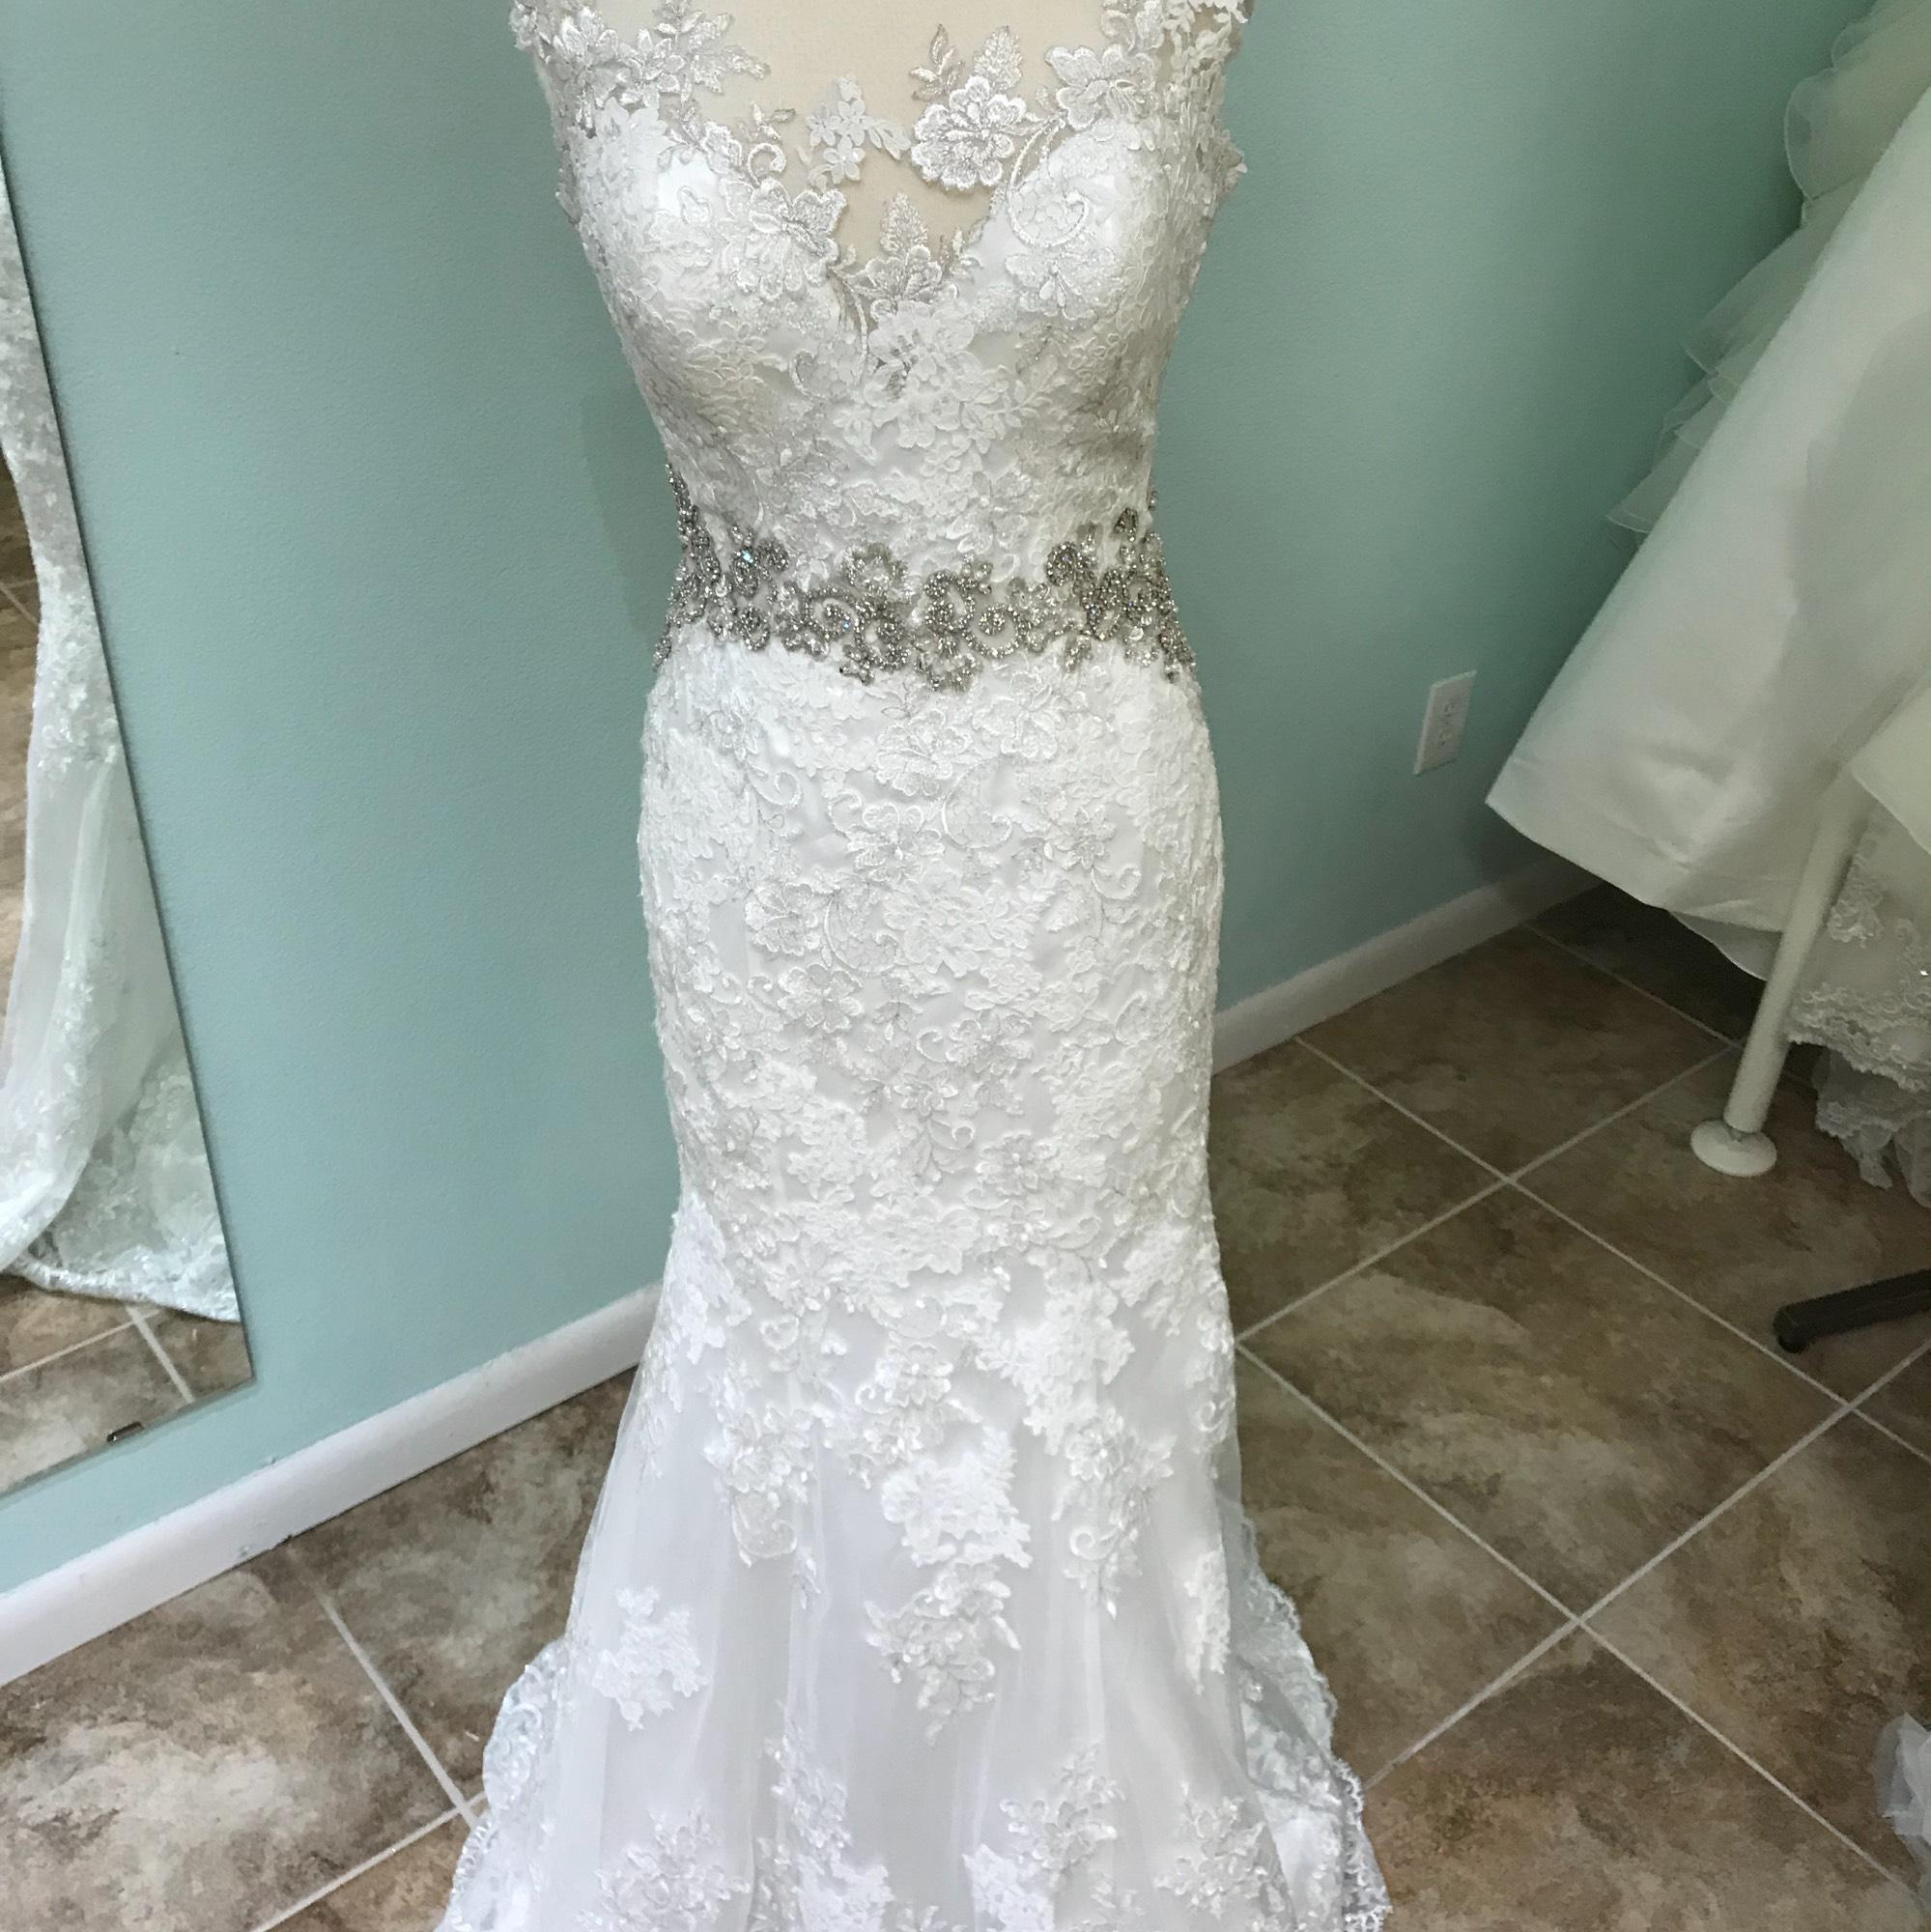 wedding dresses michigan bridals ivory lace 9371 modern wedding dress size 8 9371